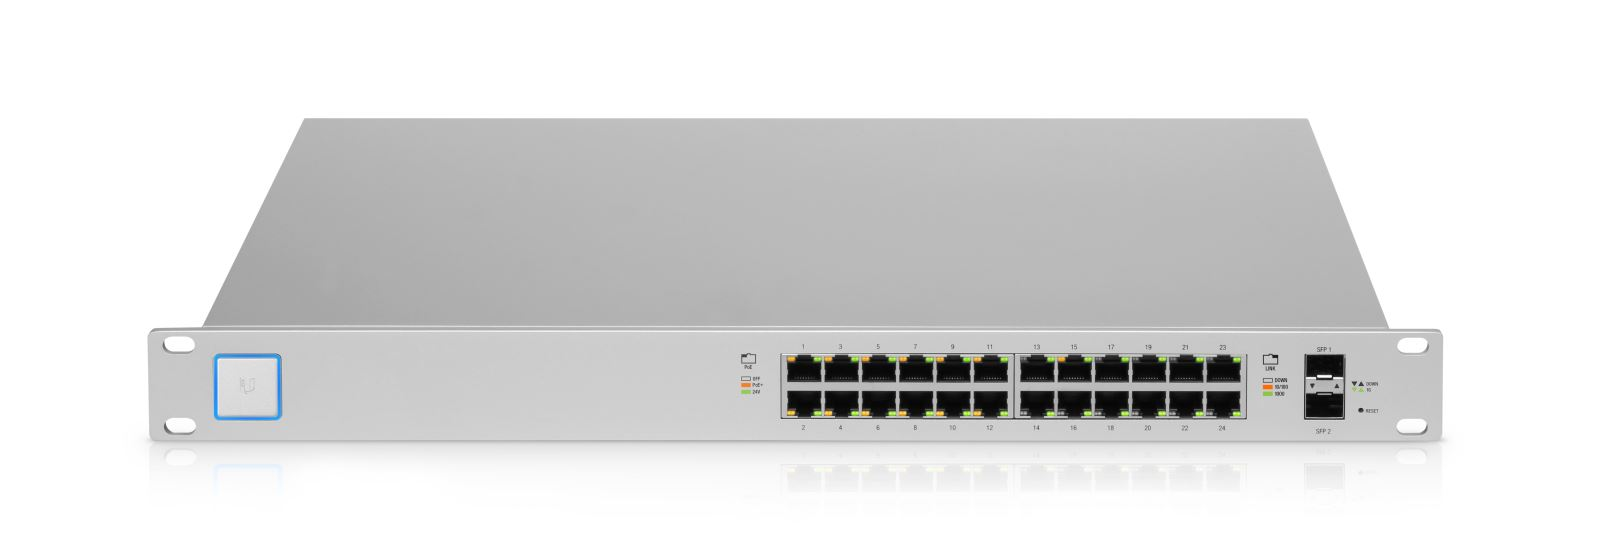 unifi-switch-24-500w